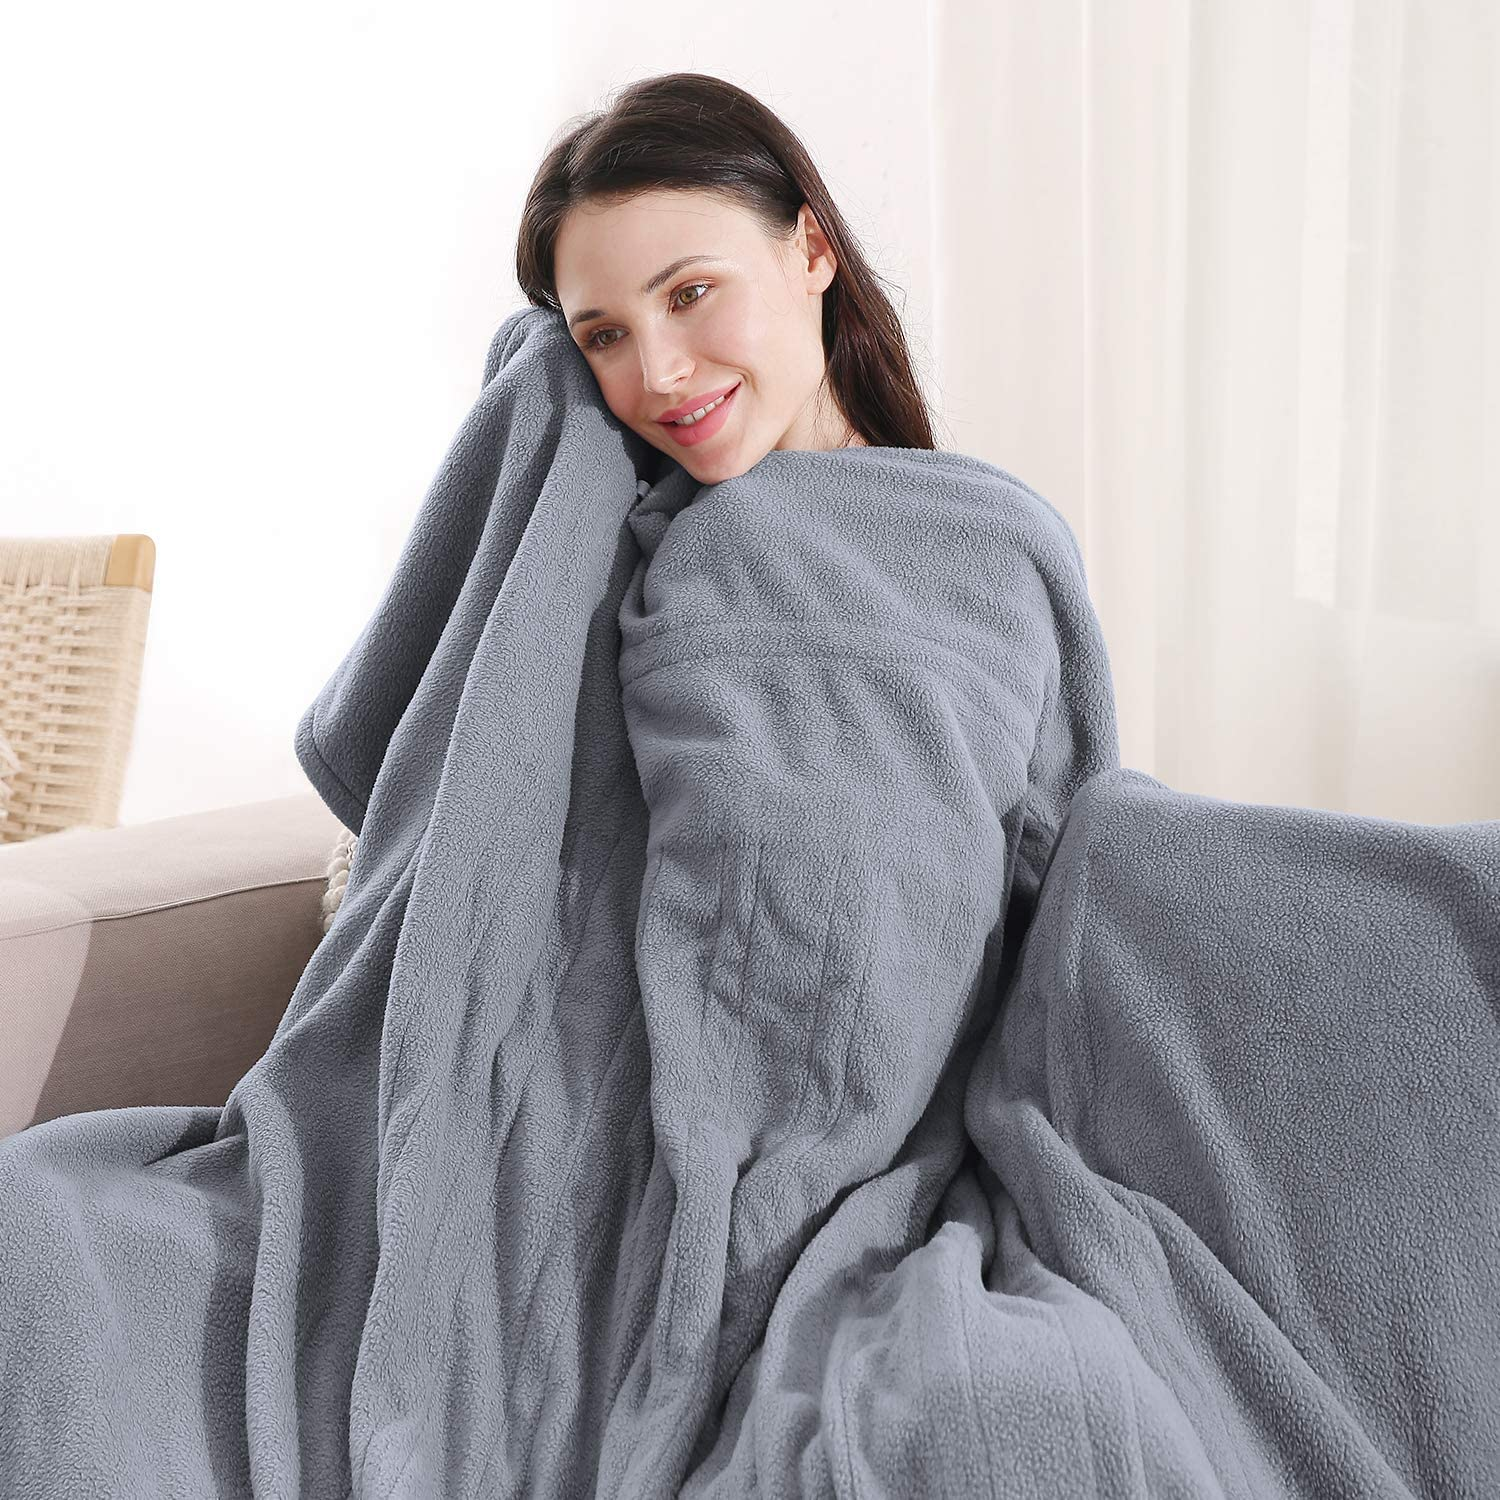 Red Wine MaxKare Electric Heated Blanket Twin Size 62 x 84 Super Cozy Soft Fleece Fast Heating /& ETL Certification with 10 Hours Auto-Off /& 4 Heating Levels